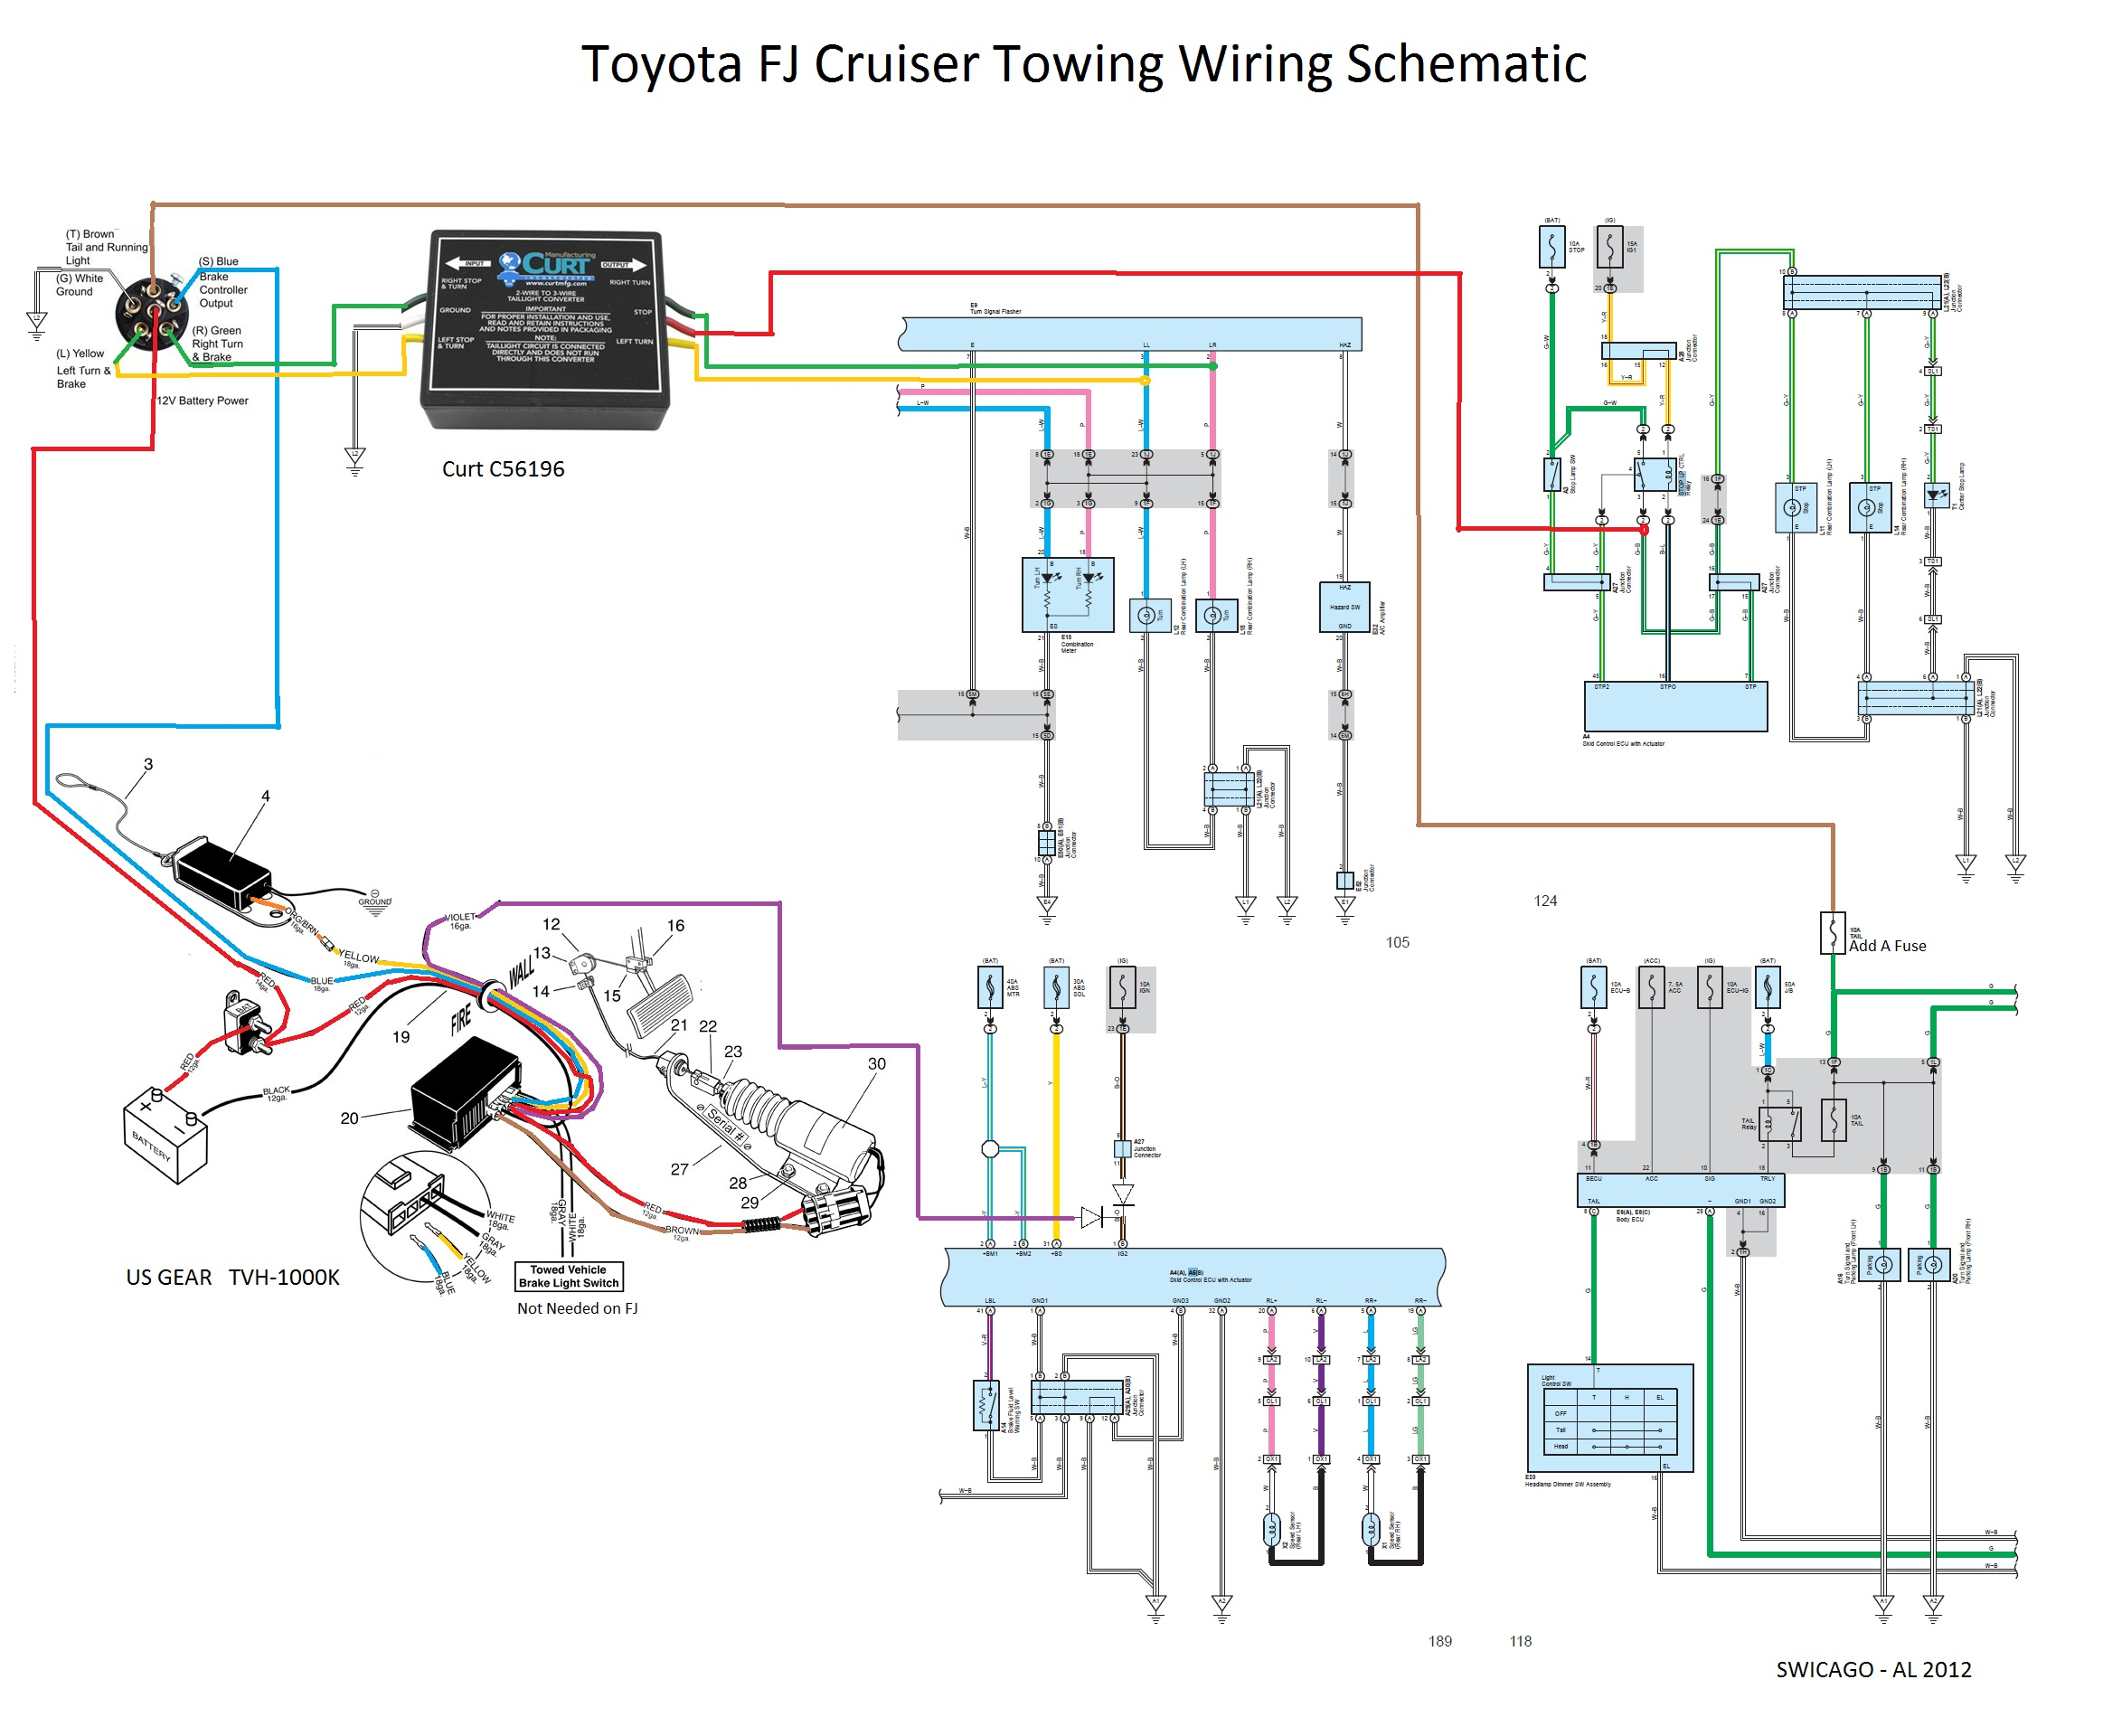 2013 Toyota Tundra Backup Camera Wiring Diagram from wholefoodsonabudget.com